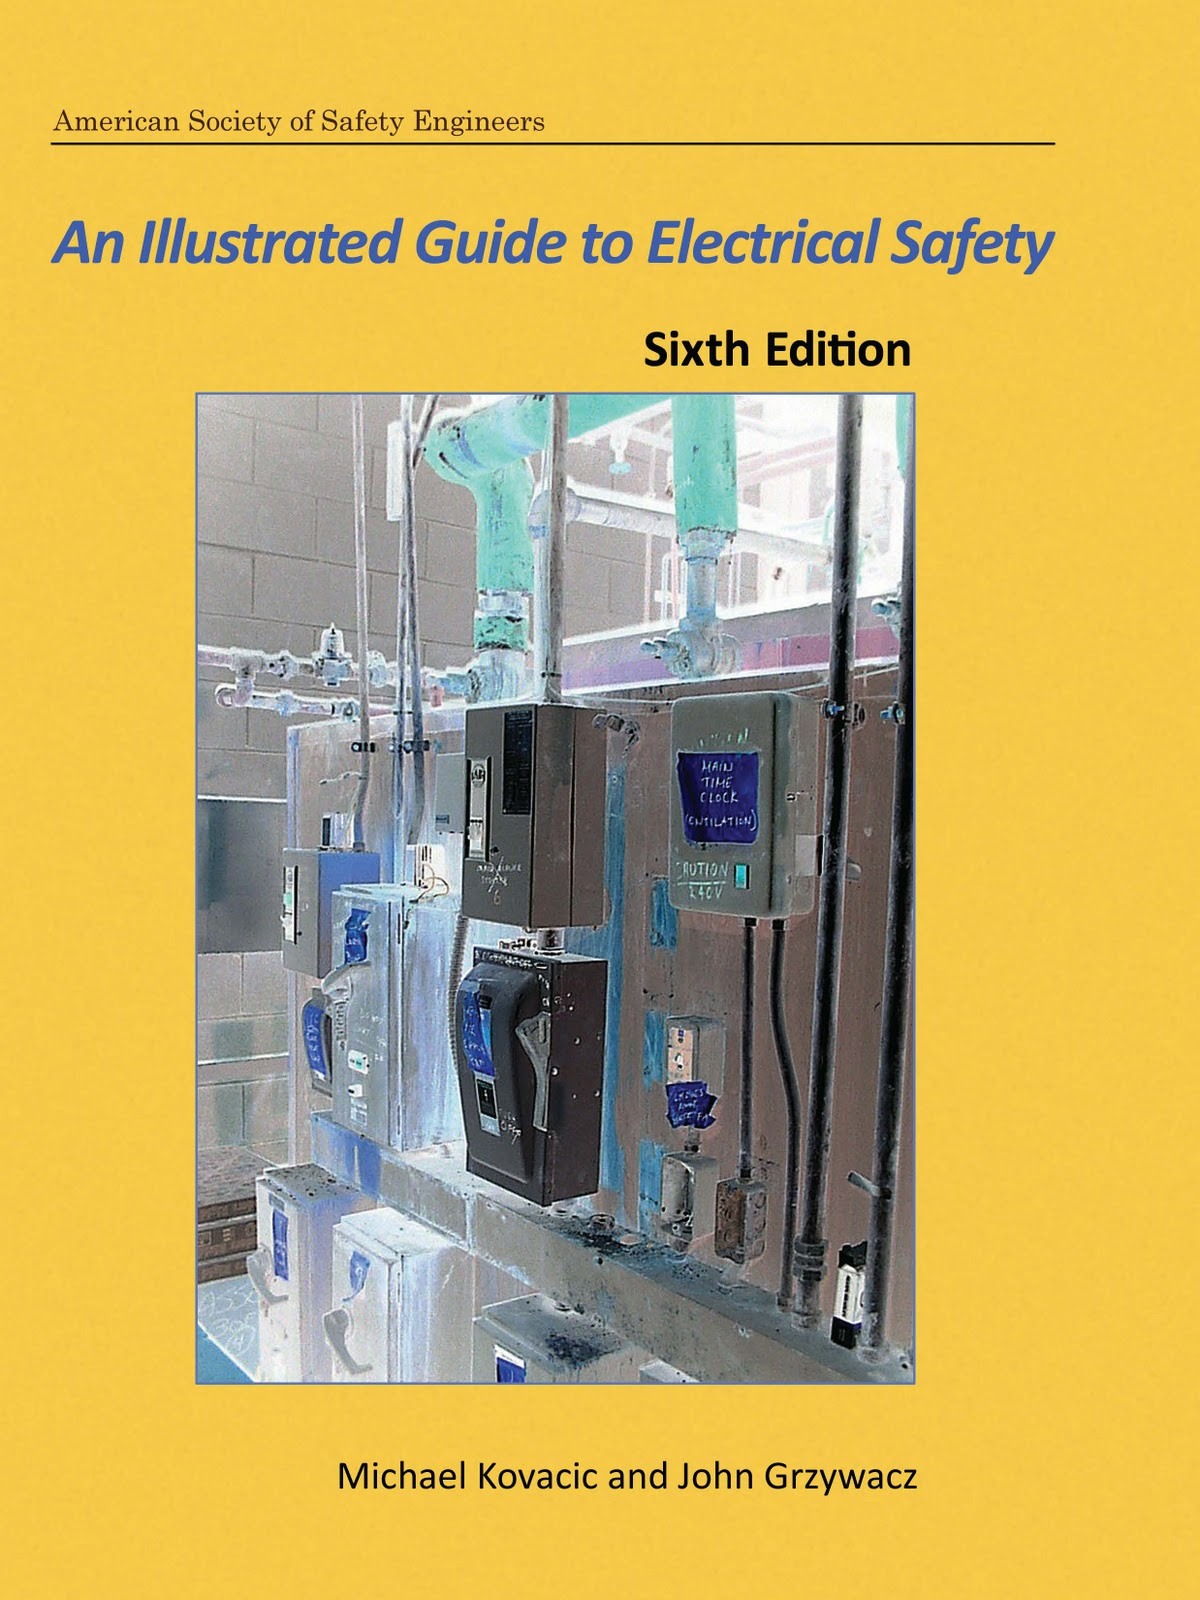 Asse Publishes Updated Guide To Electrical Safety